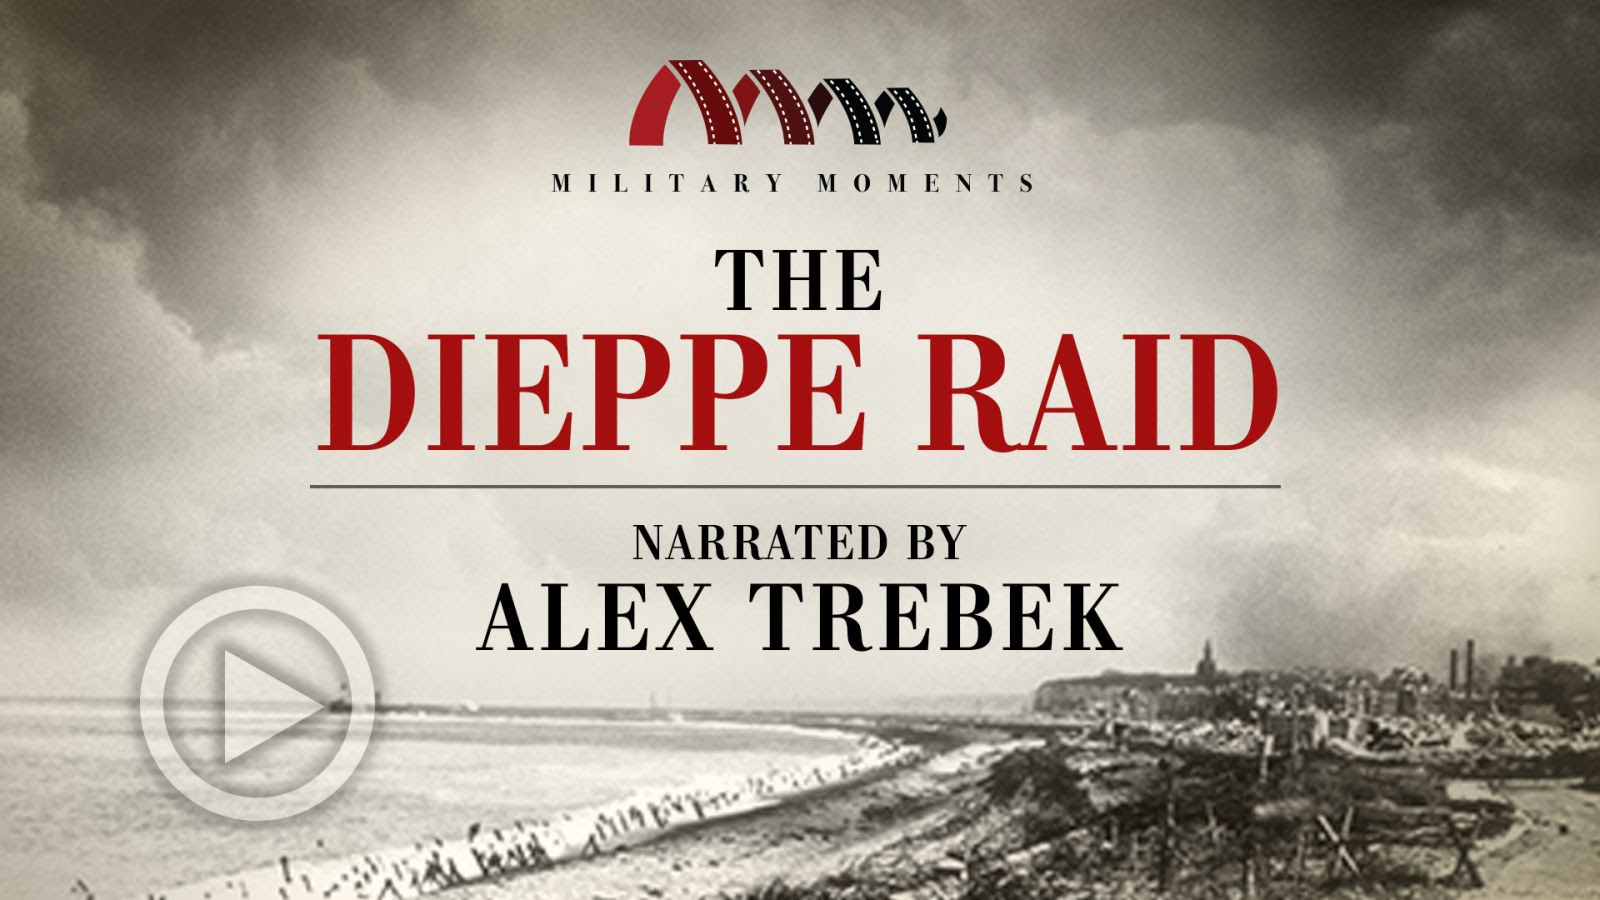 Military Moments | The Dieppe Raid Narrated by Alex Trebek